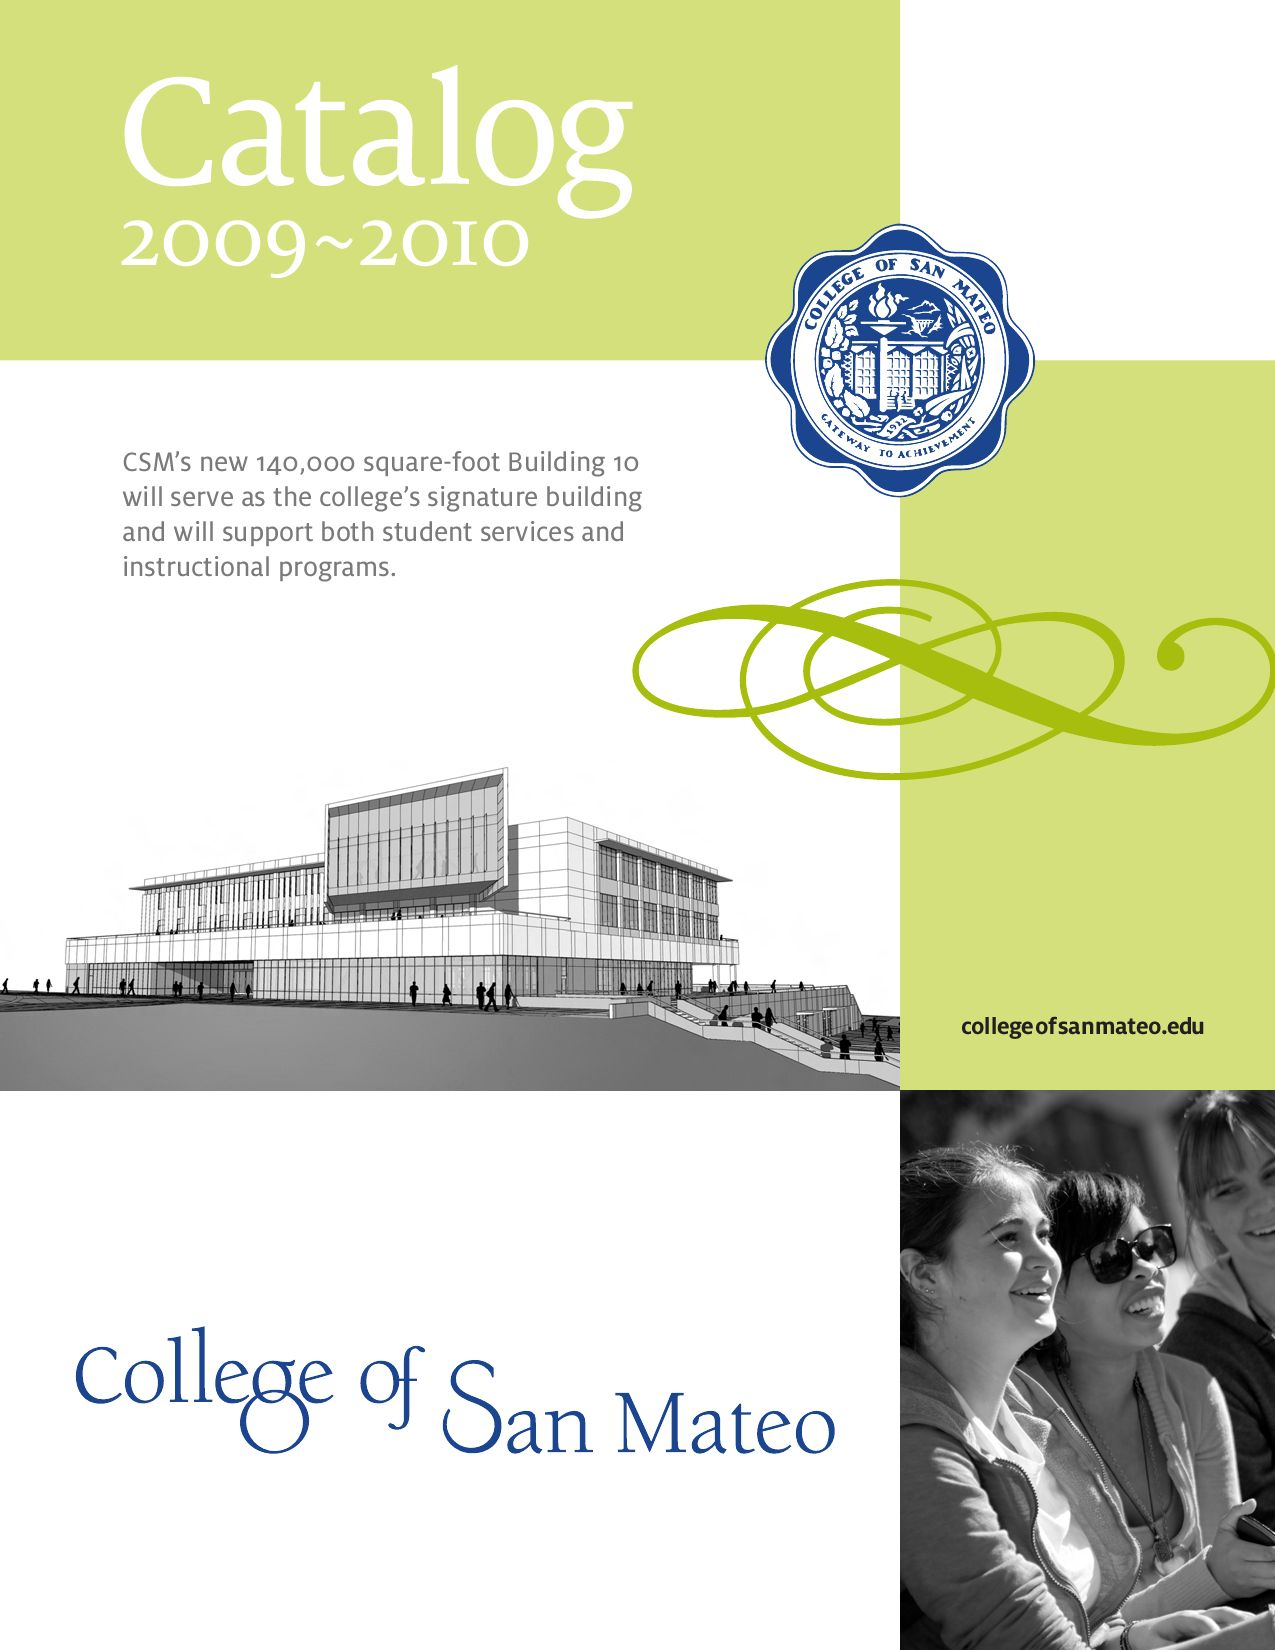 College of san mateo 2009 2010 catalog by college of san mateo issuu fandeluxe Gallery